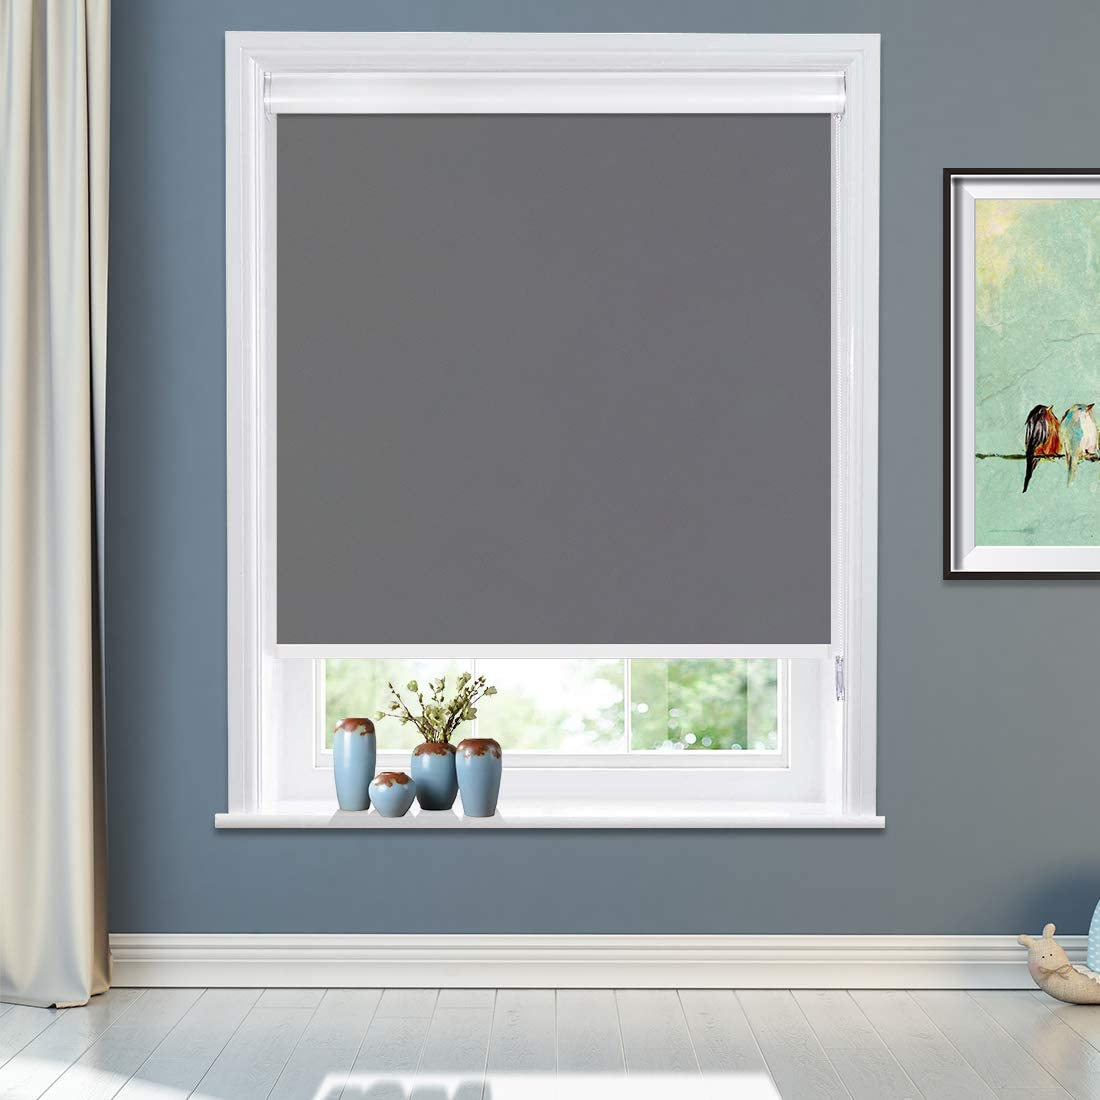 MiLin Blackout Al sold out. Store Roller Shades No and Window Blinds Tools